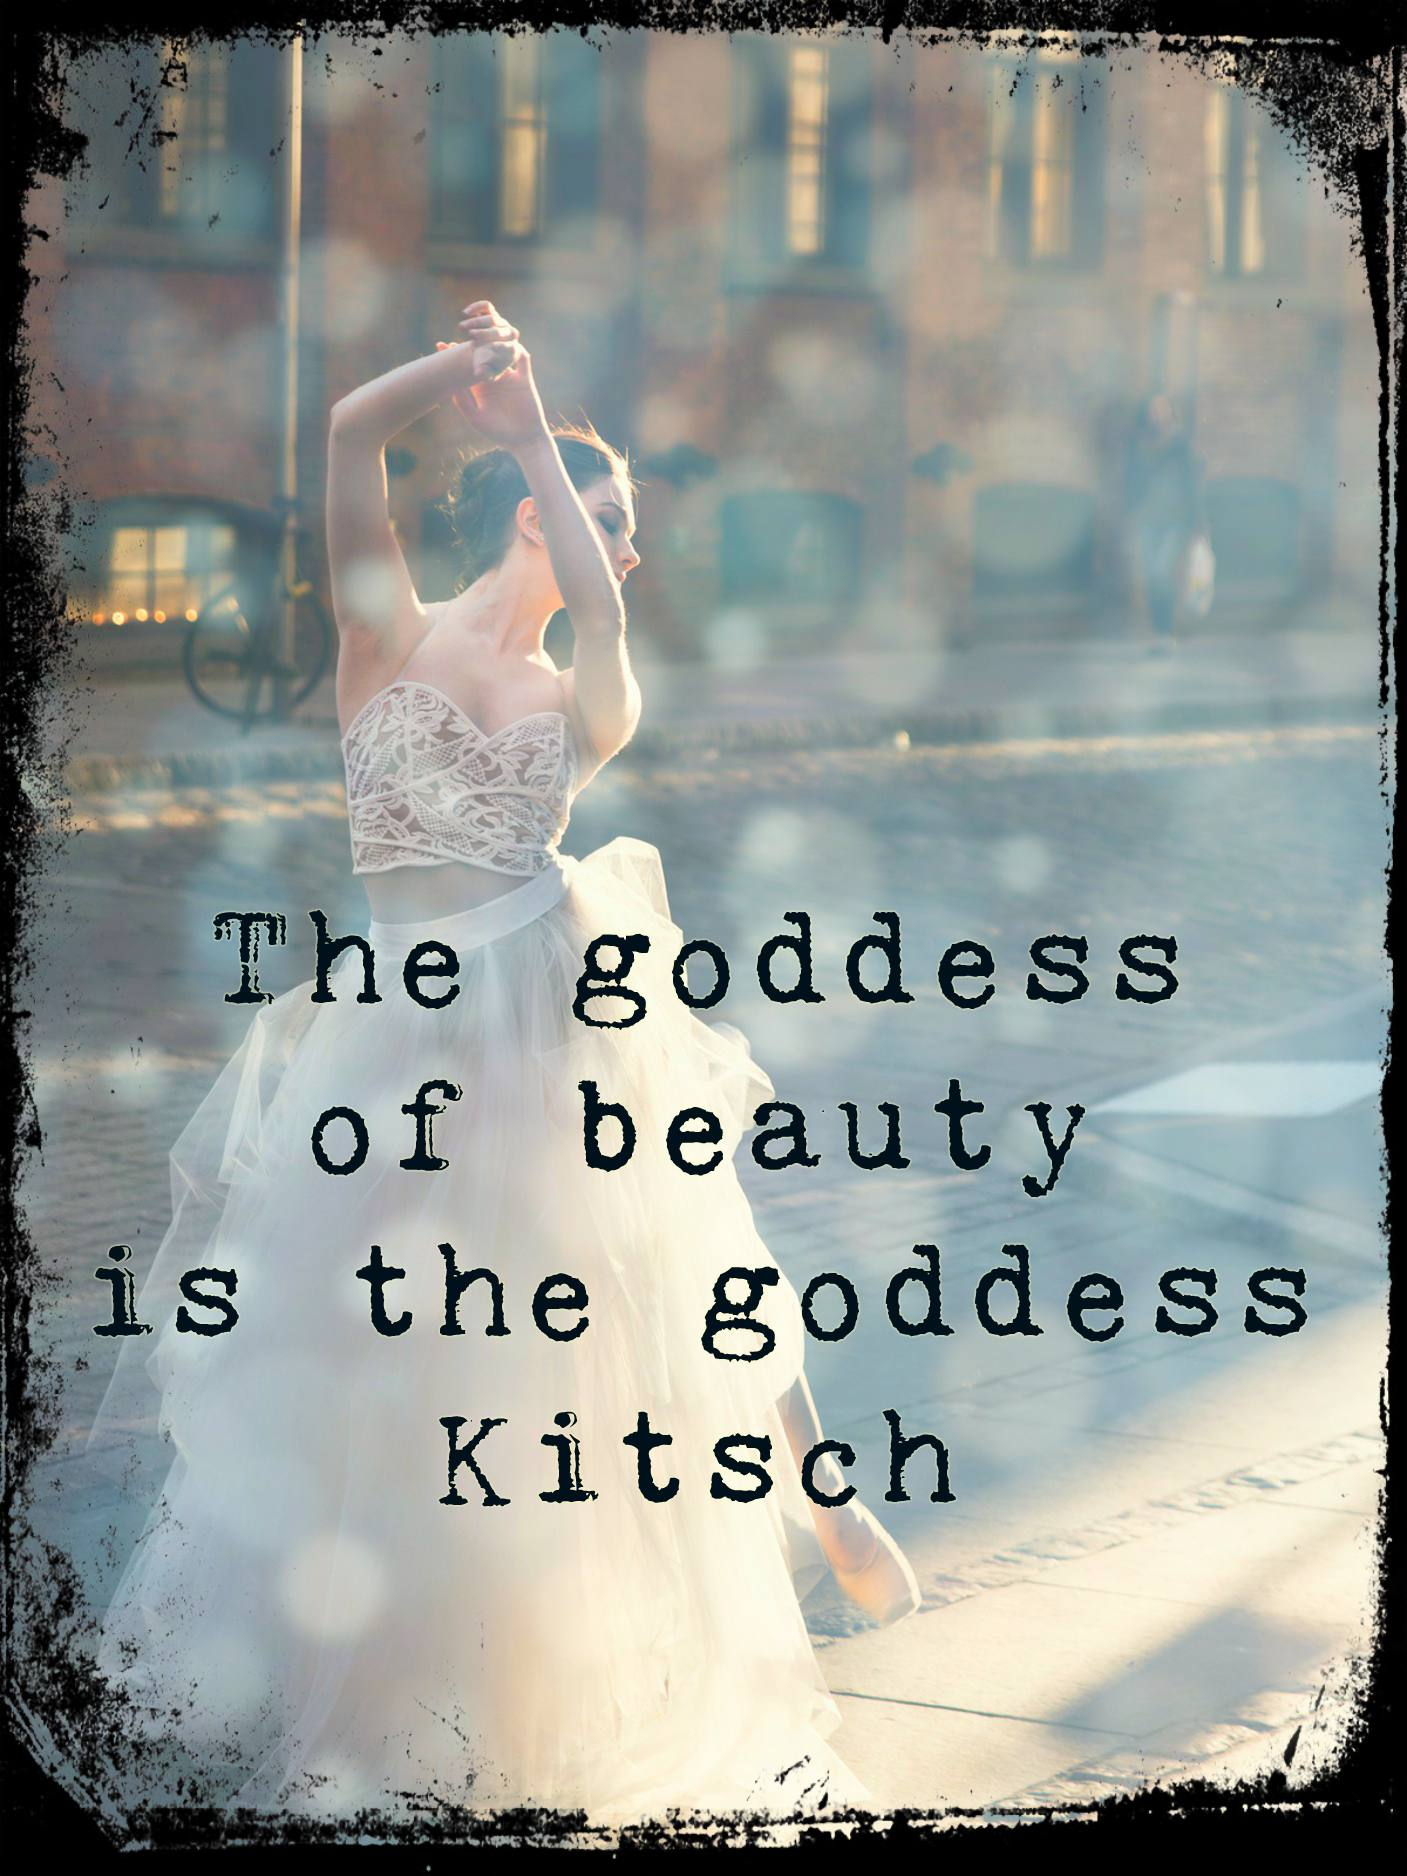 be kitschig quote Hermann Broch kitsch beauty